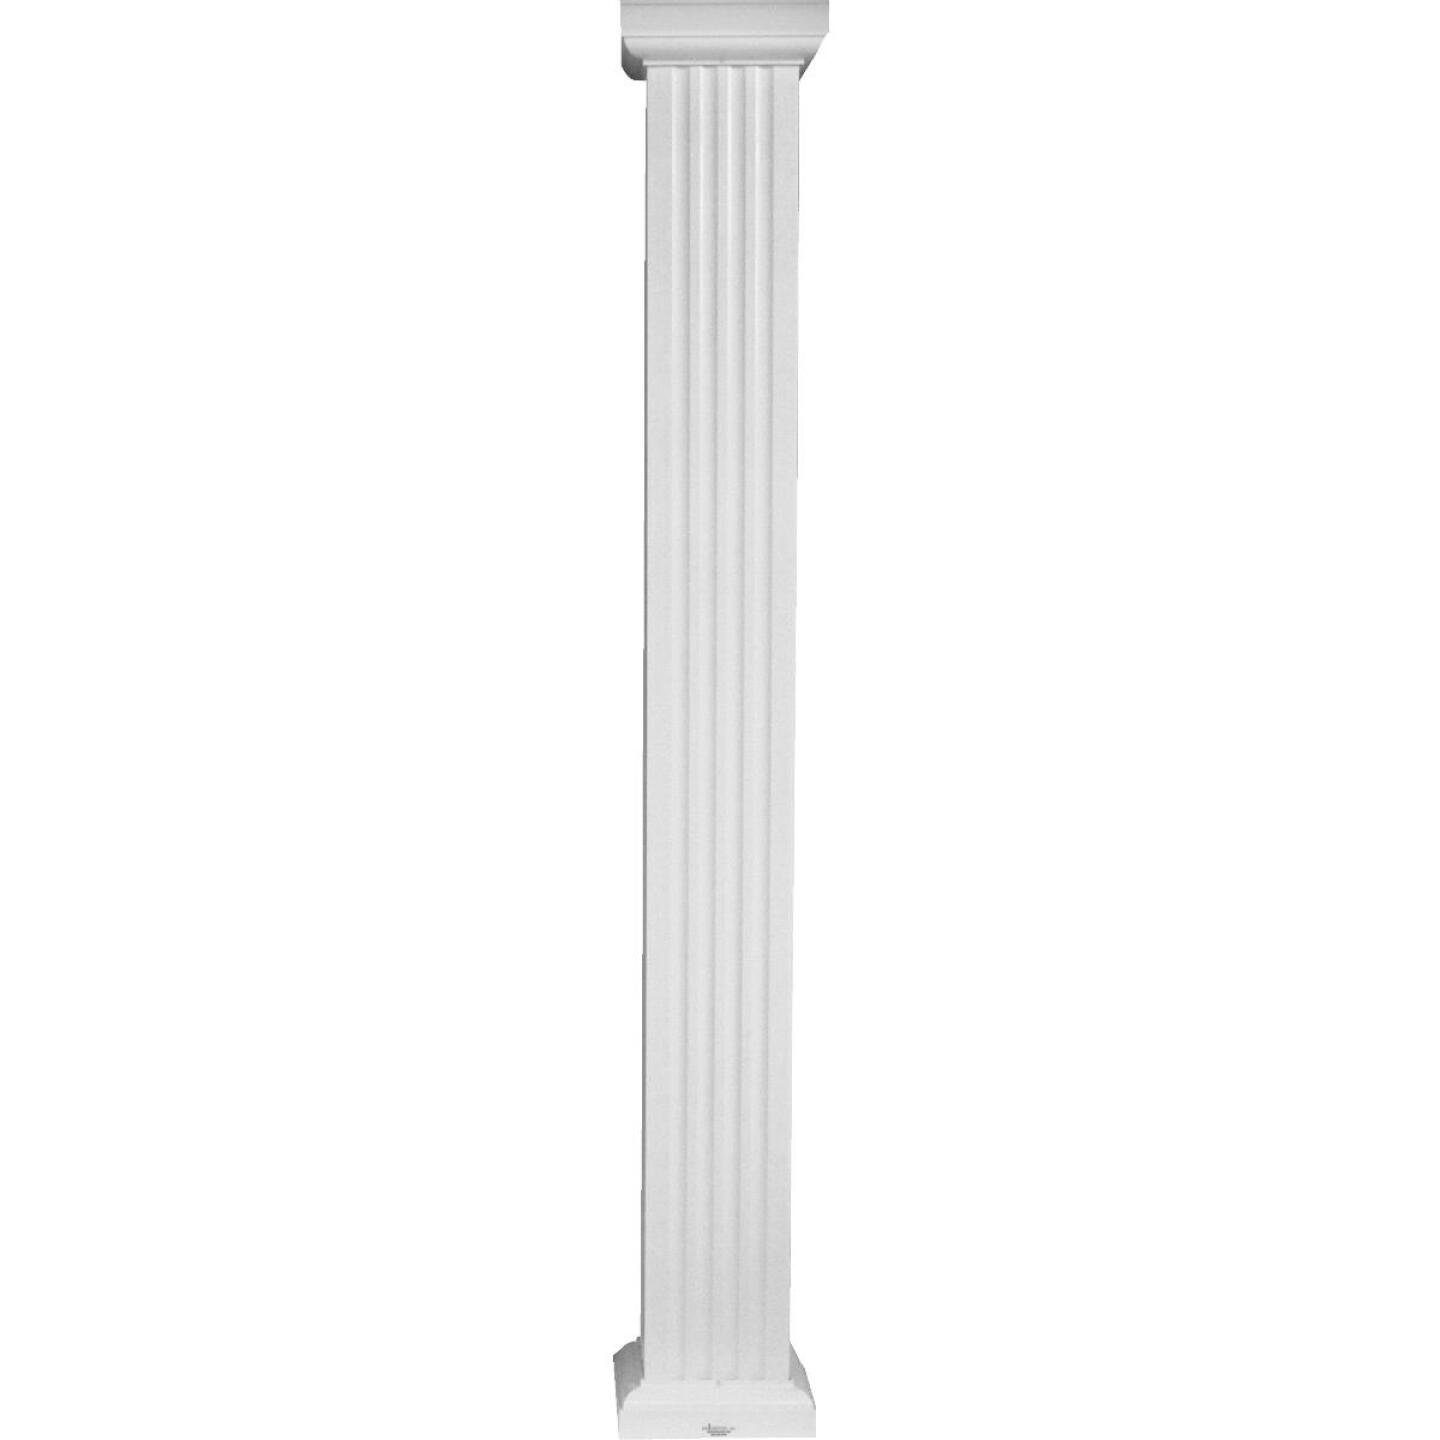 Crown Column 8 In. x 8 Ft. White Powder Coated Square Fluted Aluminum Column Image 1